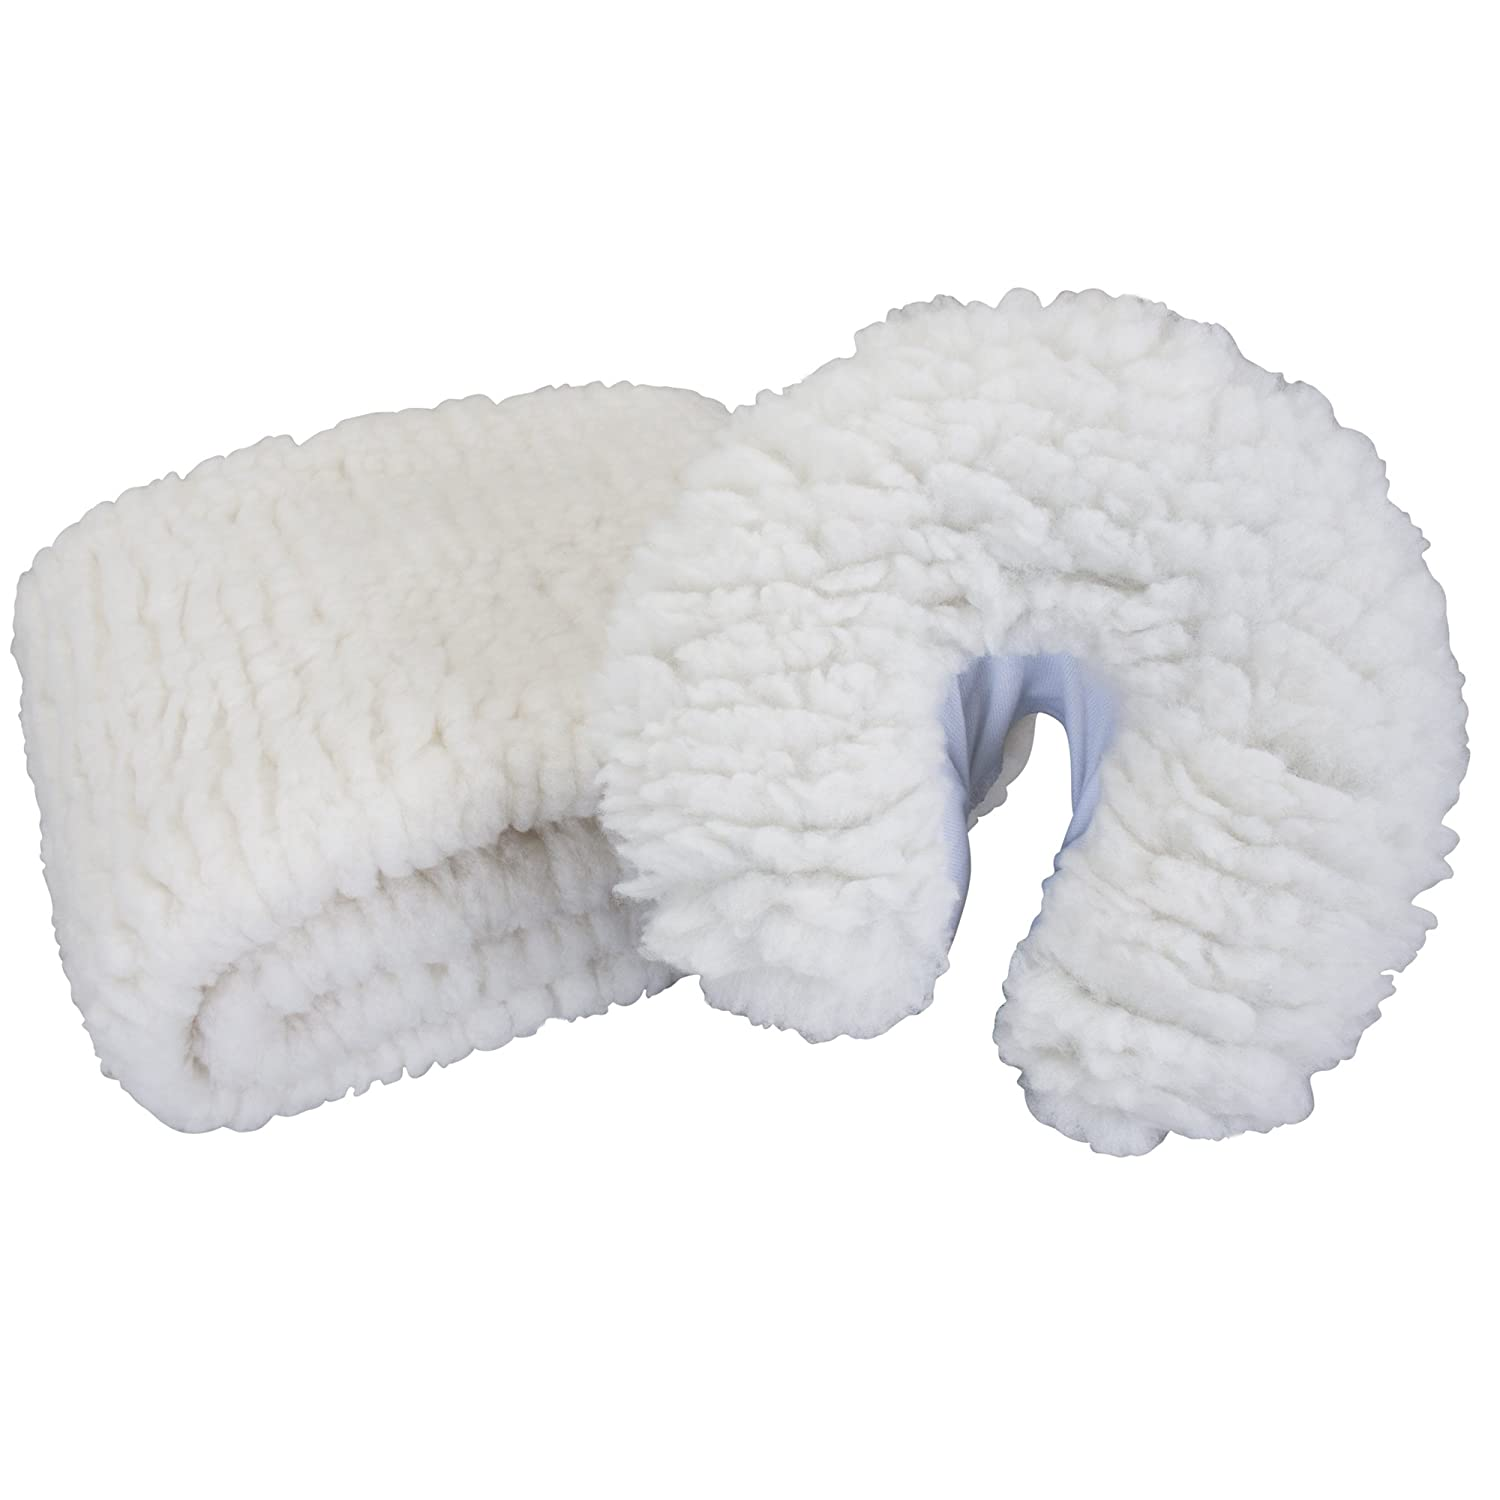 EARTHLITE Massage Table Fleece Pad Set – 1/2 Thick Woolly Fleece incl. Fitted Pad & Face Cradle Cover (2pc) 44200